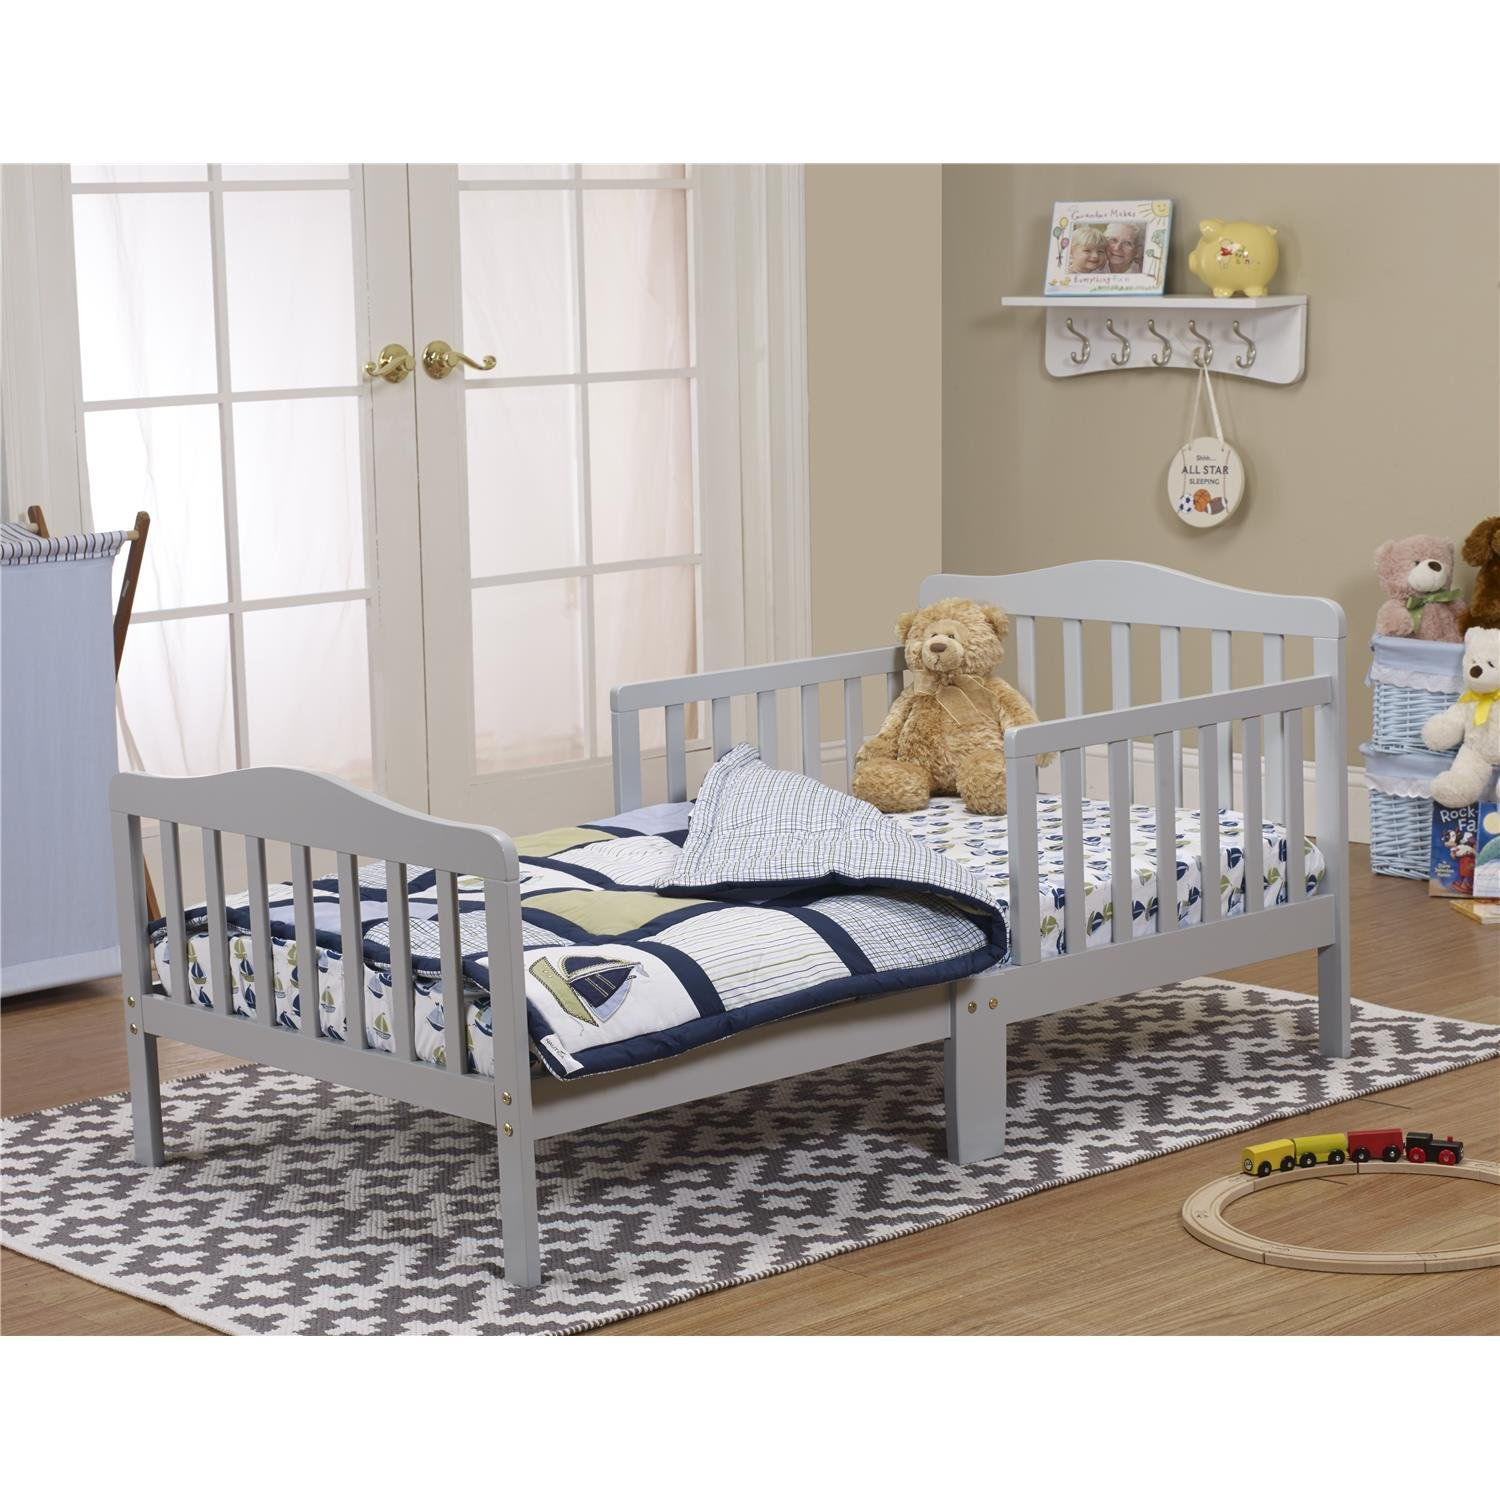 Orbelle Trading Toddler Bed, Grey